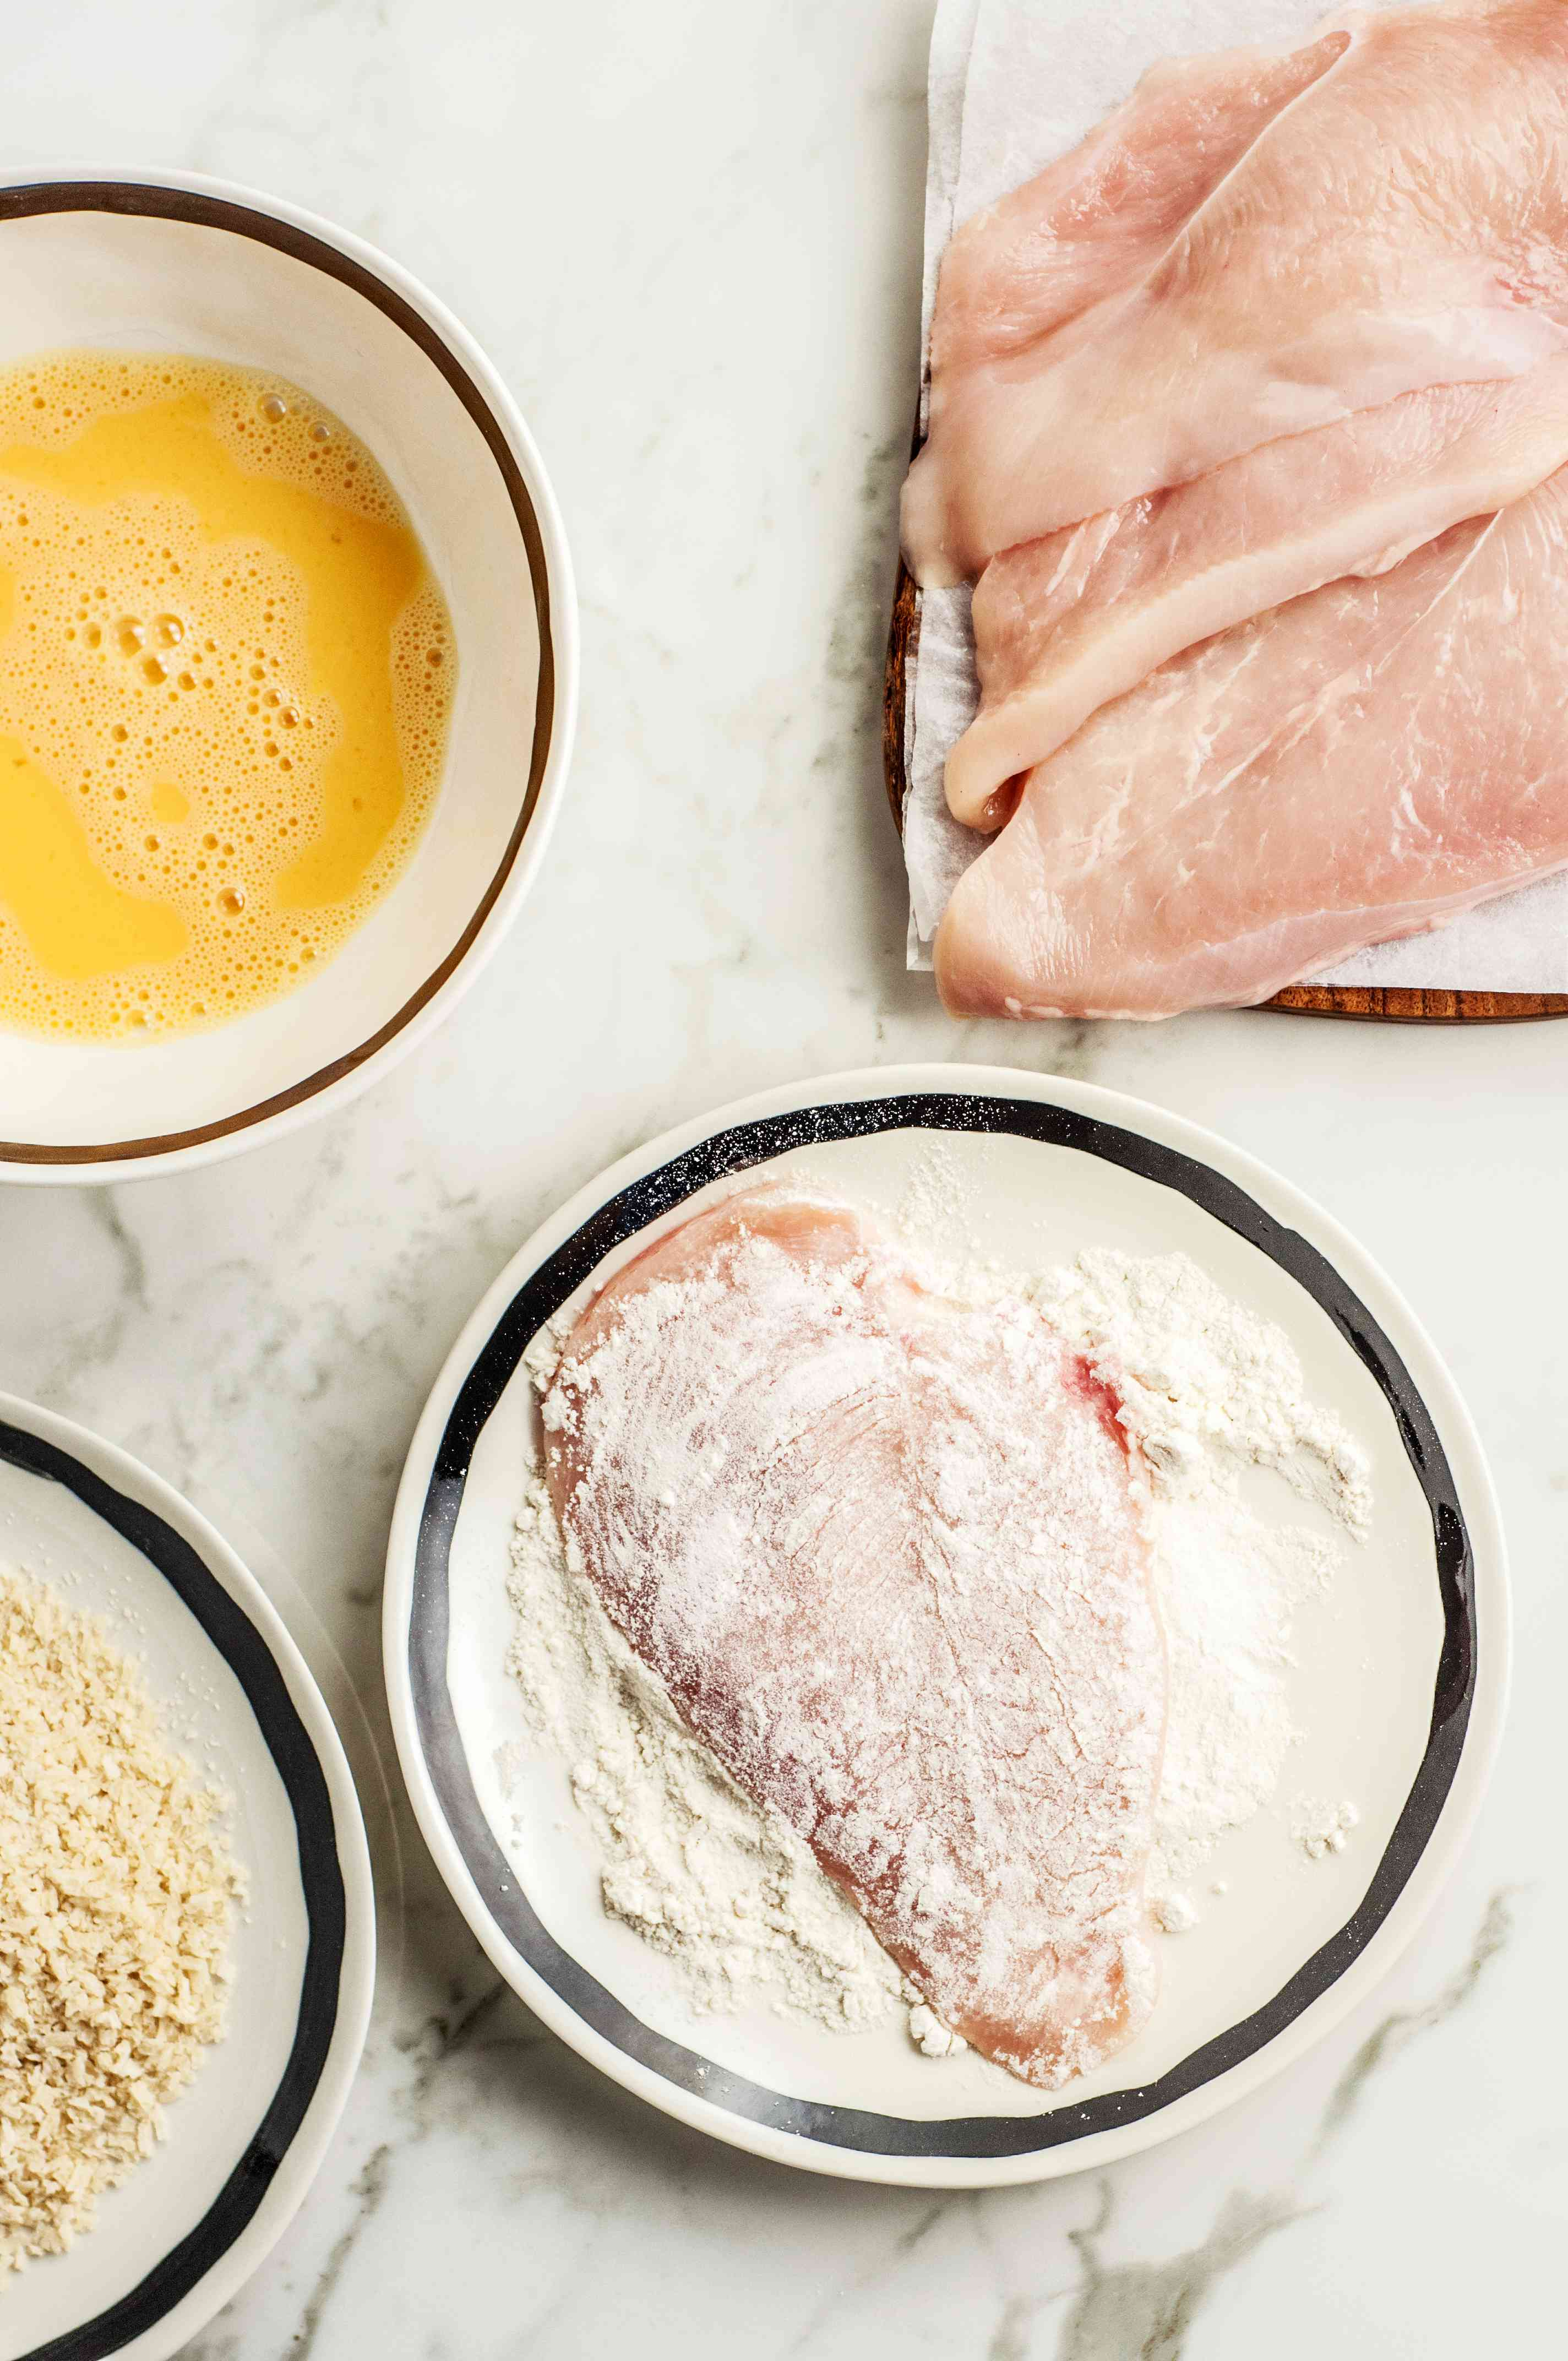 Dredging chicken breasts in egg, flour and breadcrumbs